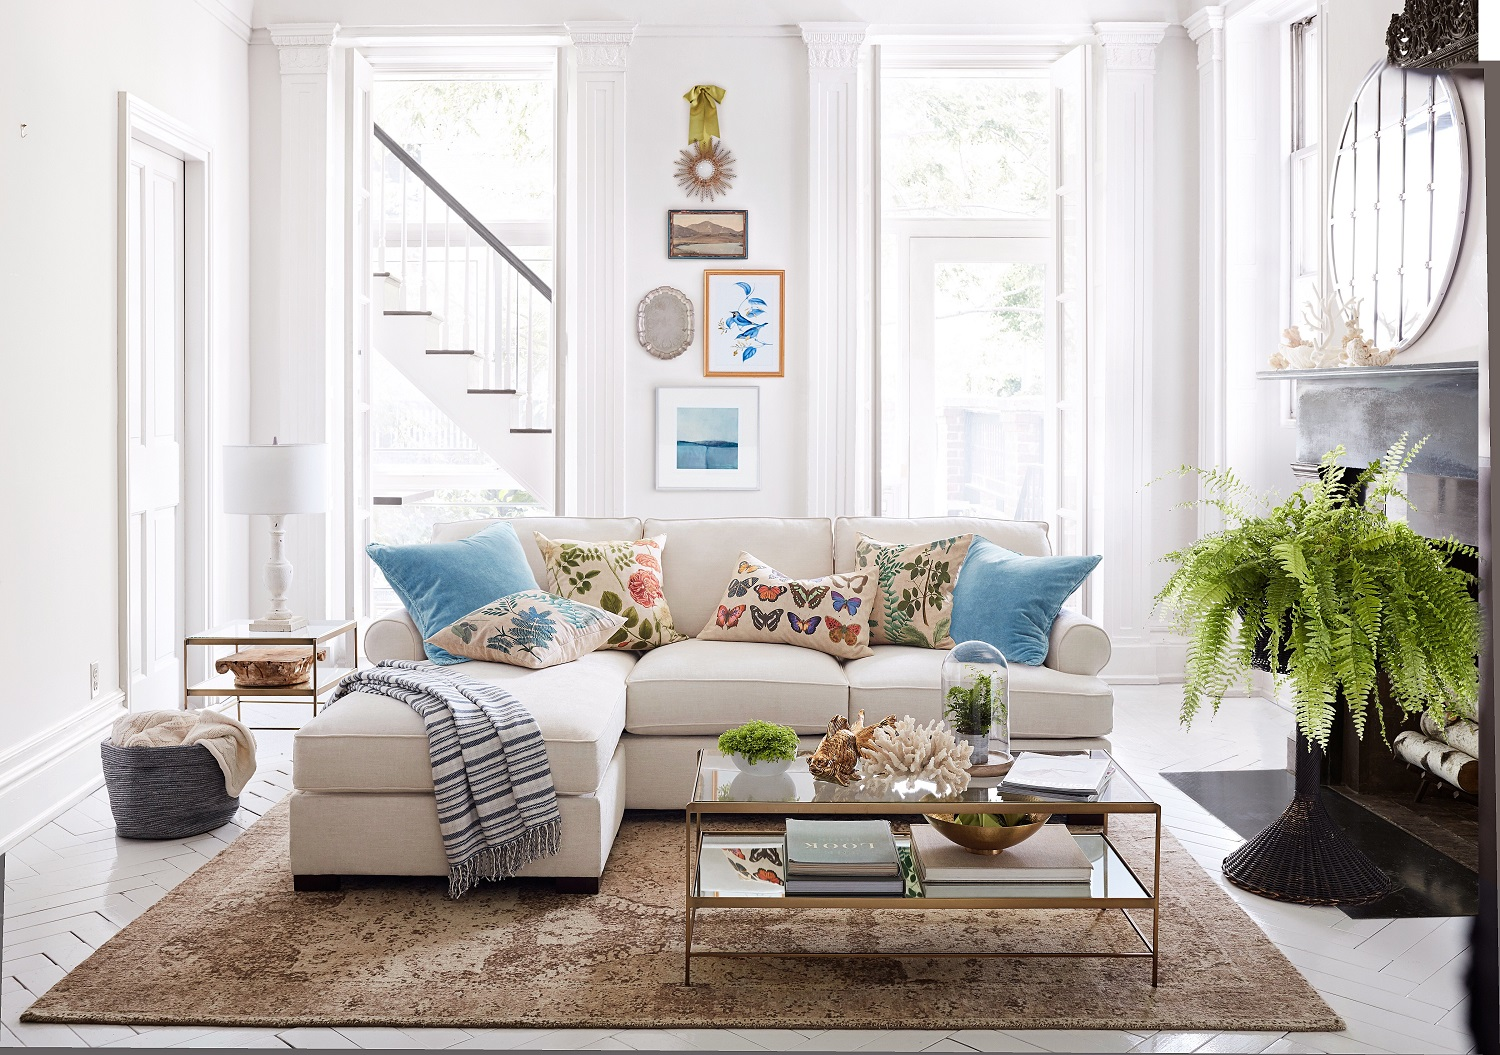 Give your living room sofa a new look with a few spring pillows that become the focal point of the room. Always select a couple of solid colors to mix with patterns and flowers. Shown: Townsend sofa with reversible storage. Photo: Pottery Barn